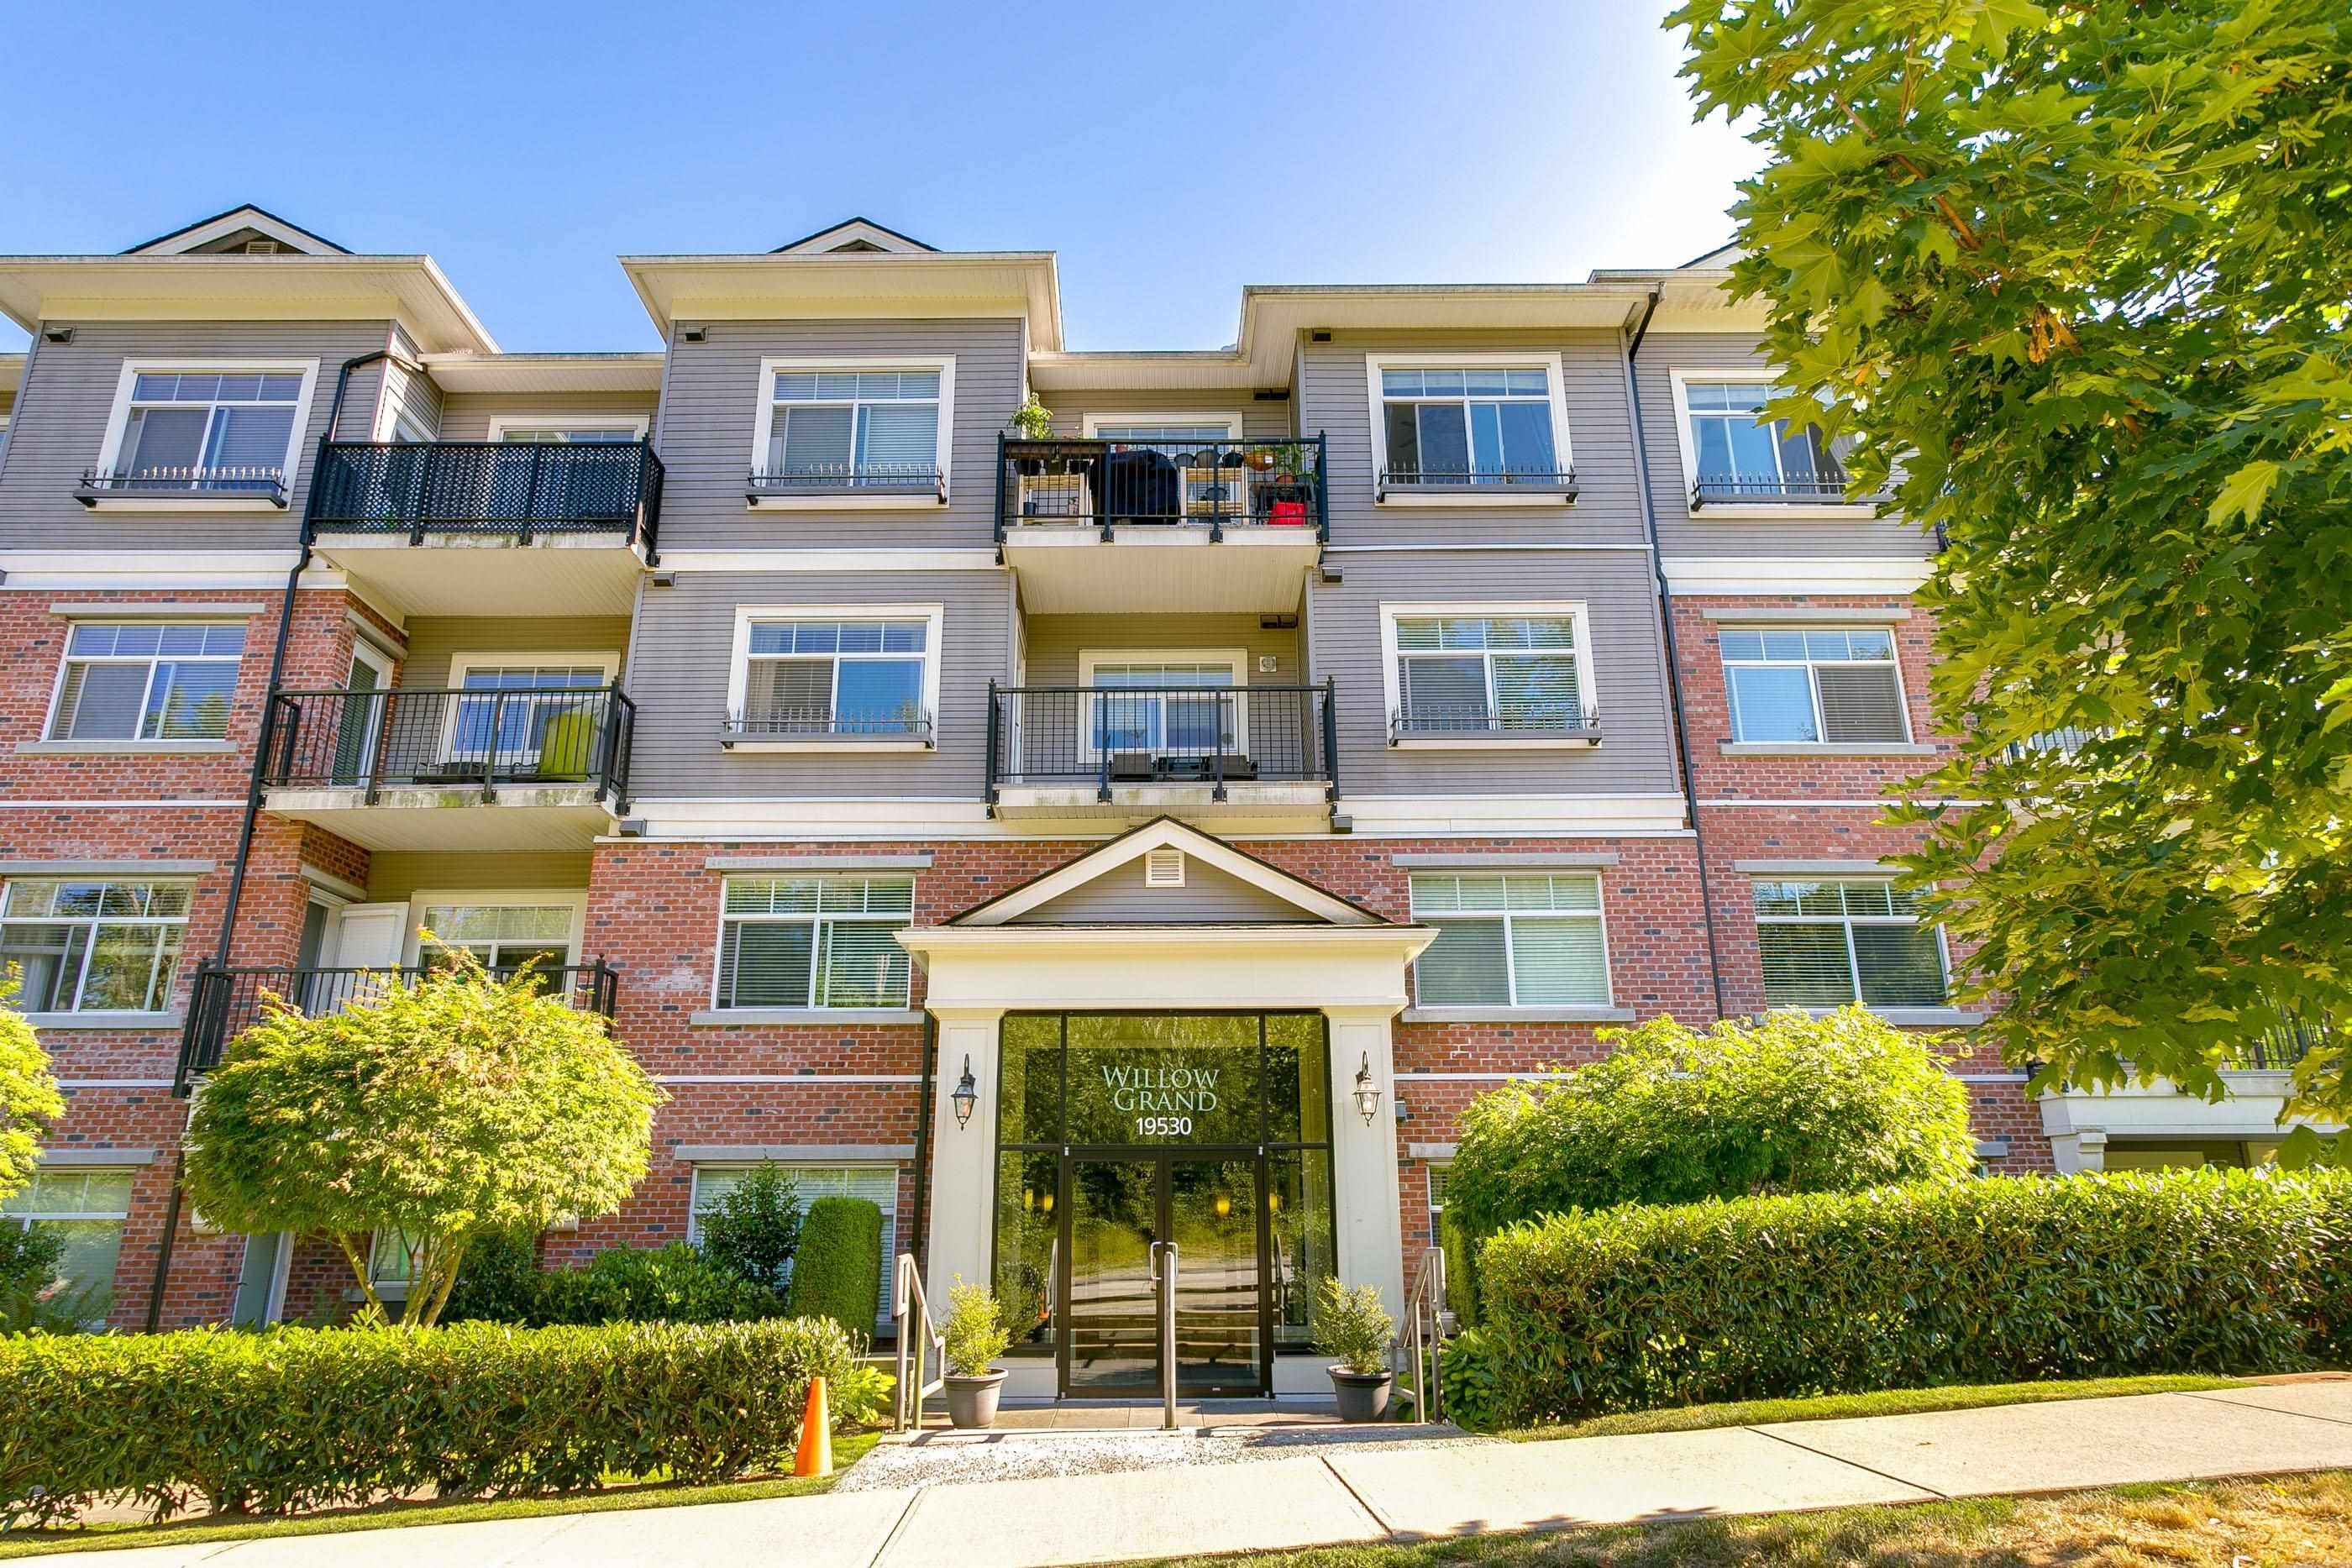 """Main Photo: 101 19530 65 Avenue in Surrey: Clayton Condo for sale in """"WILLOW GRAND"""" (Cloverdale)  : MLS®# R2620784"""